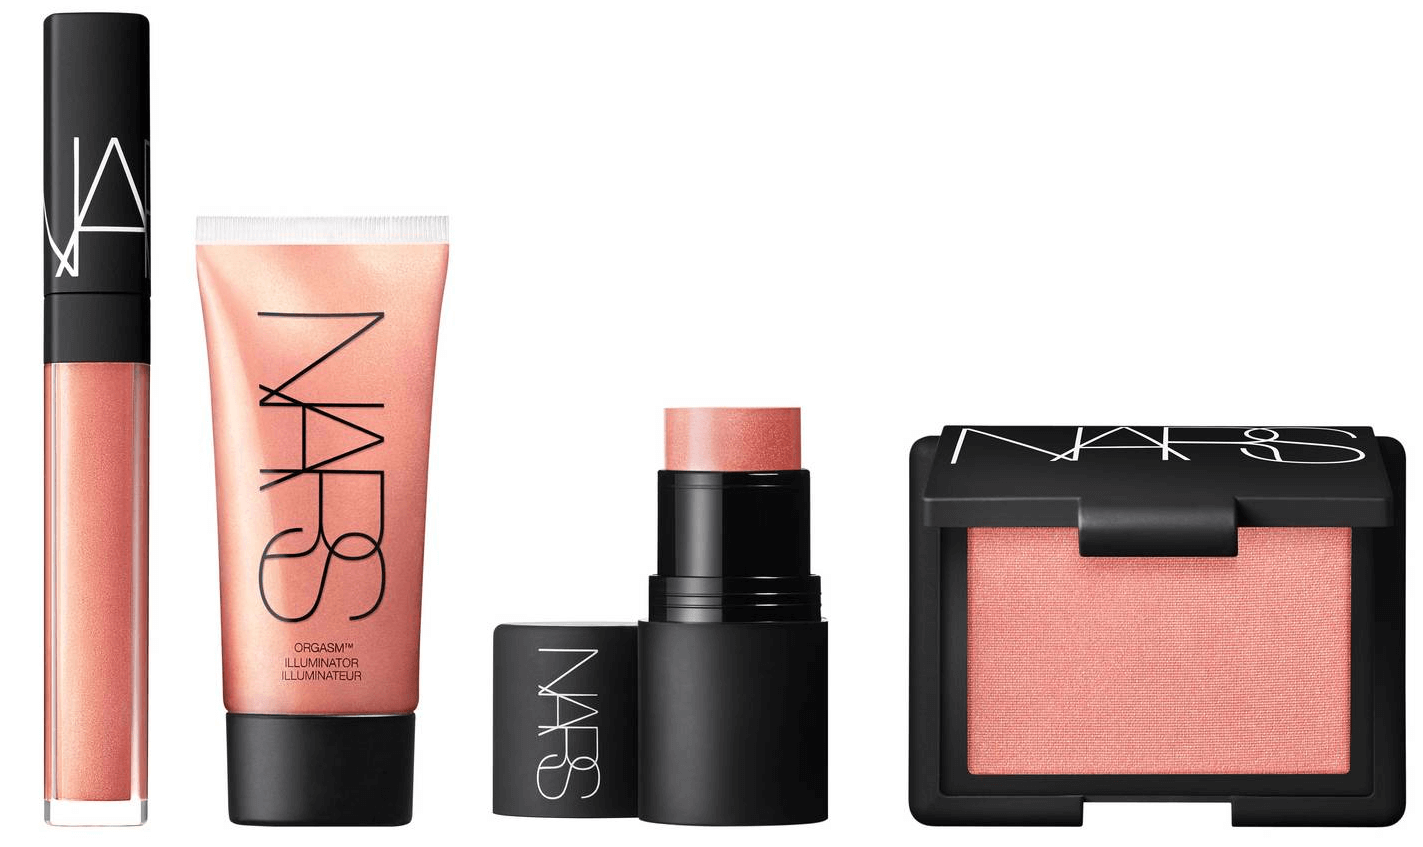 blush-orgasm-rouge-a-levres-illuminateur-highlighter-rosegold-nars-sephora-makeupbyazadig